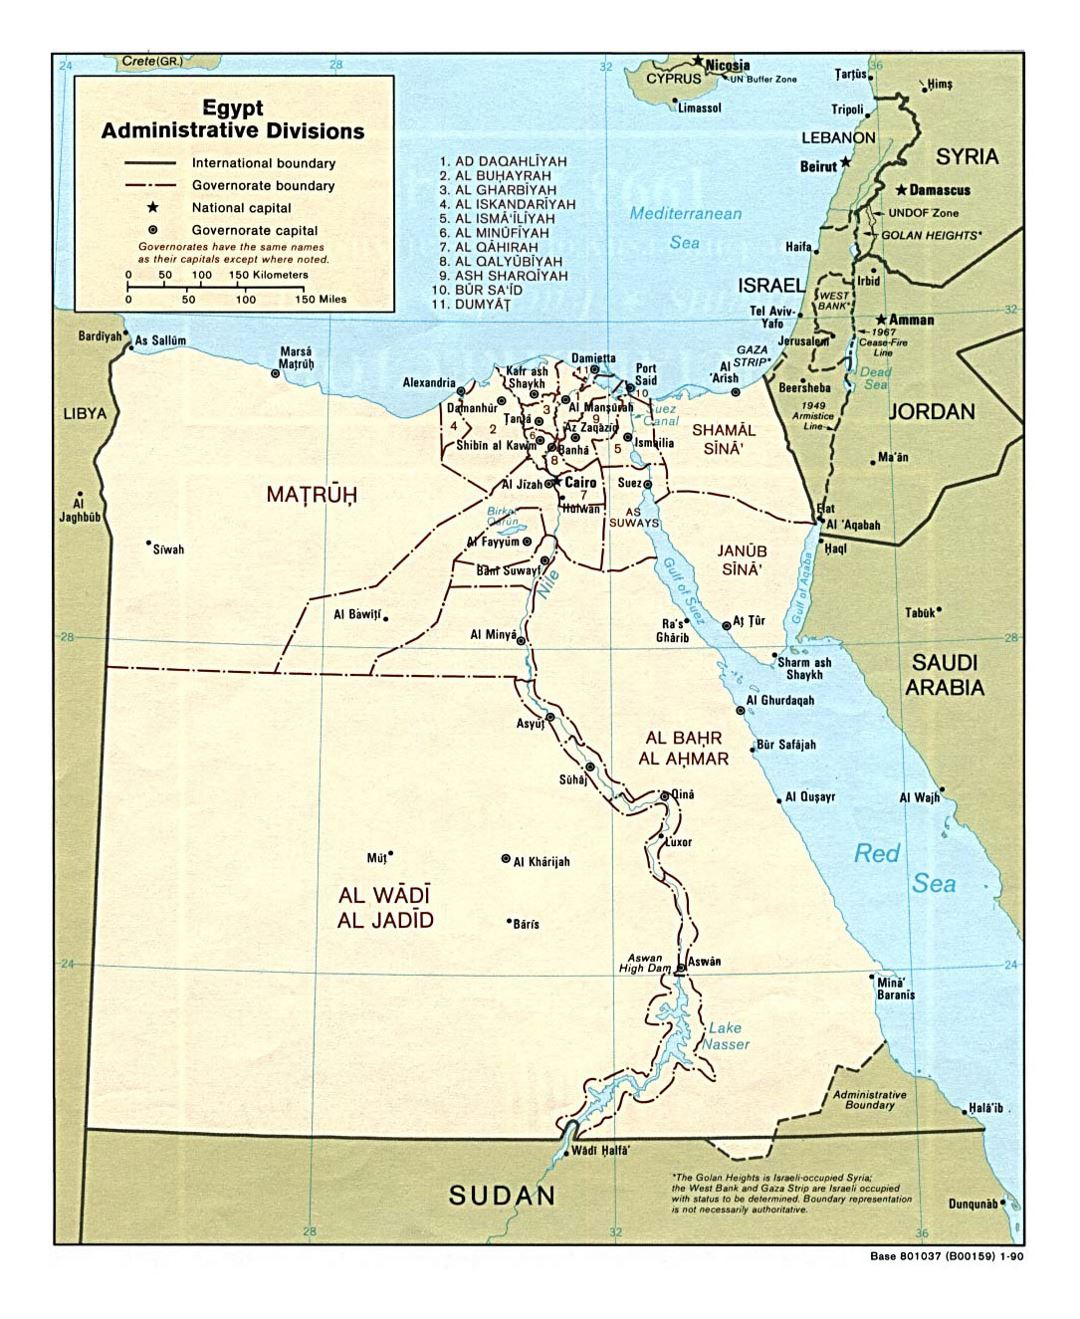 Detailed administrative divisions map of Egypt - 1990